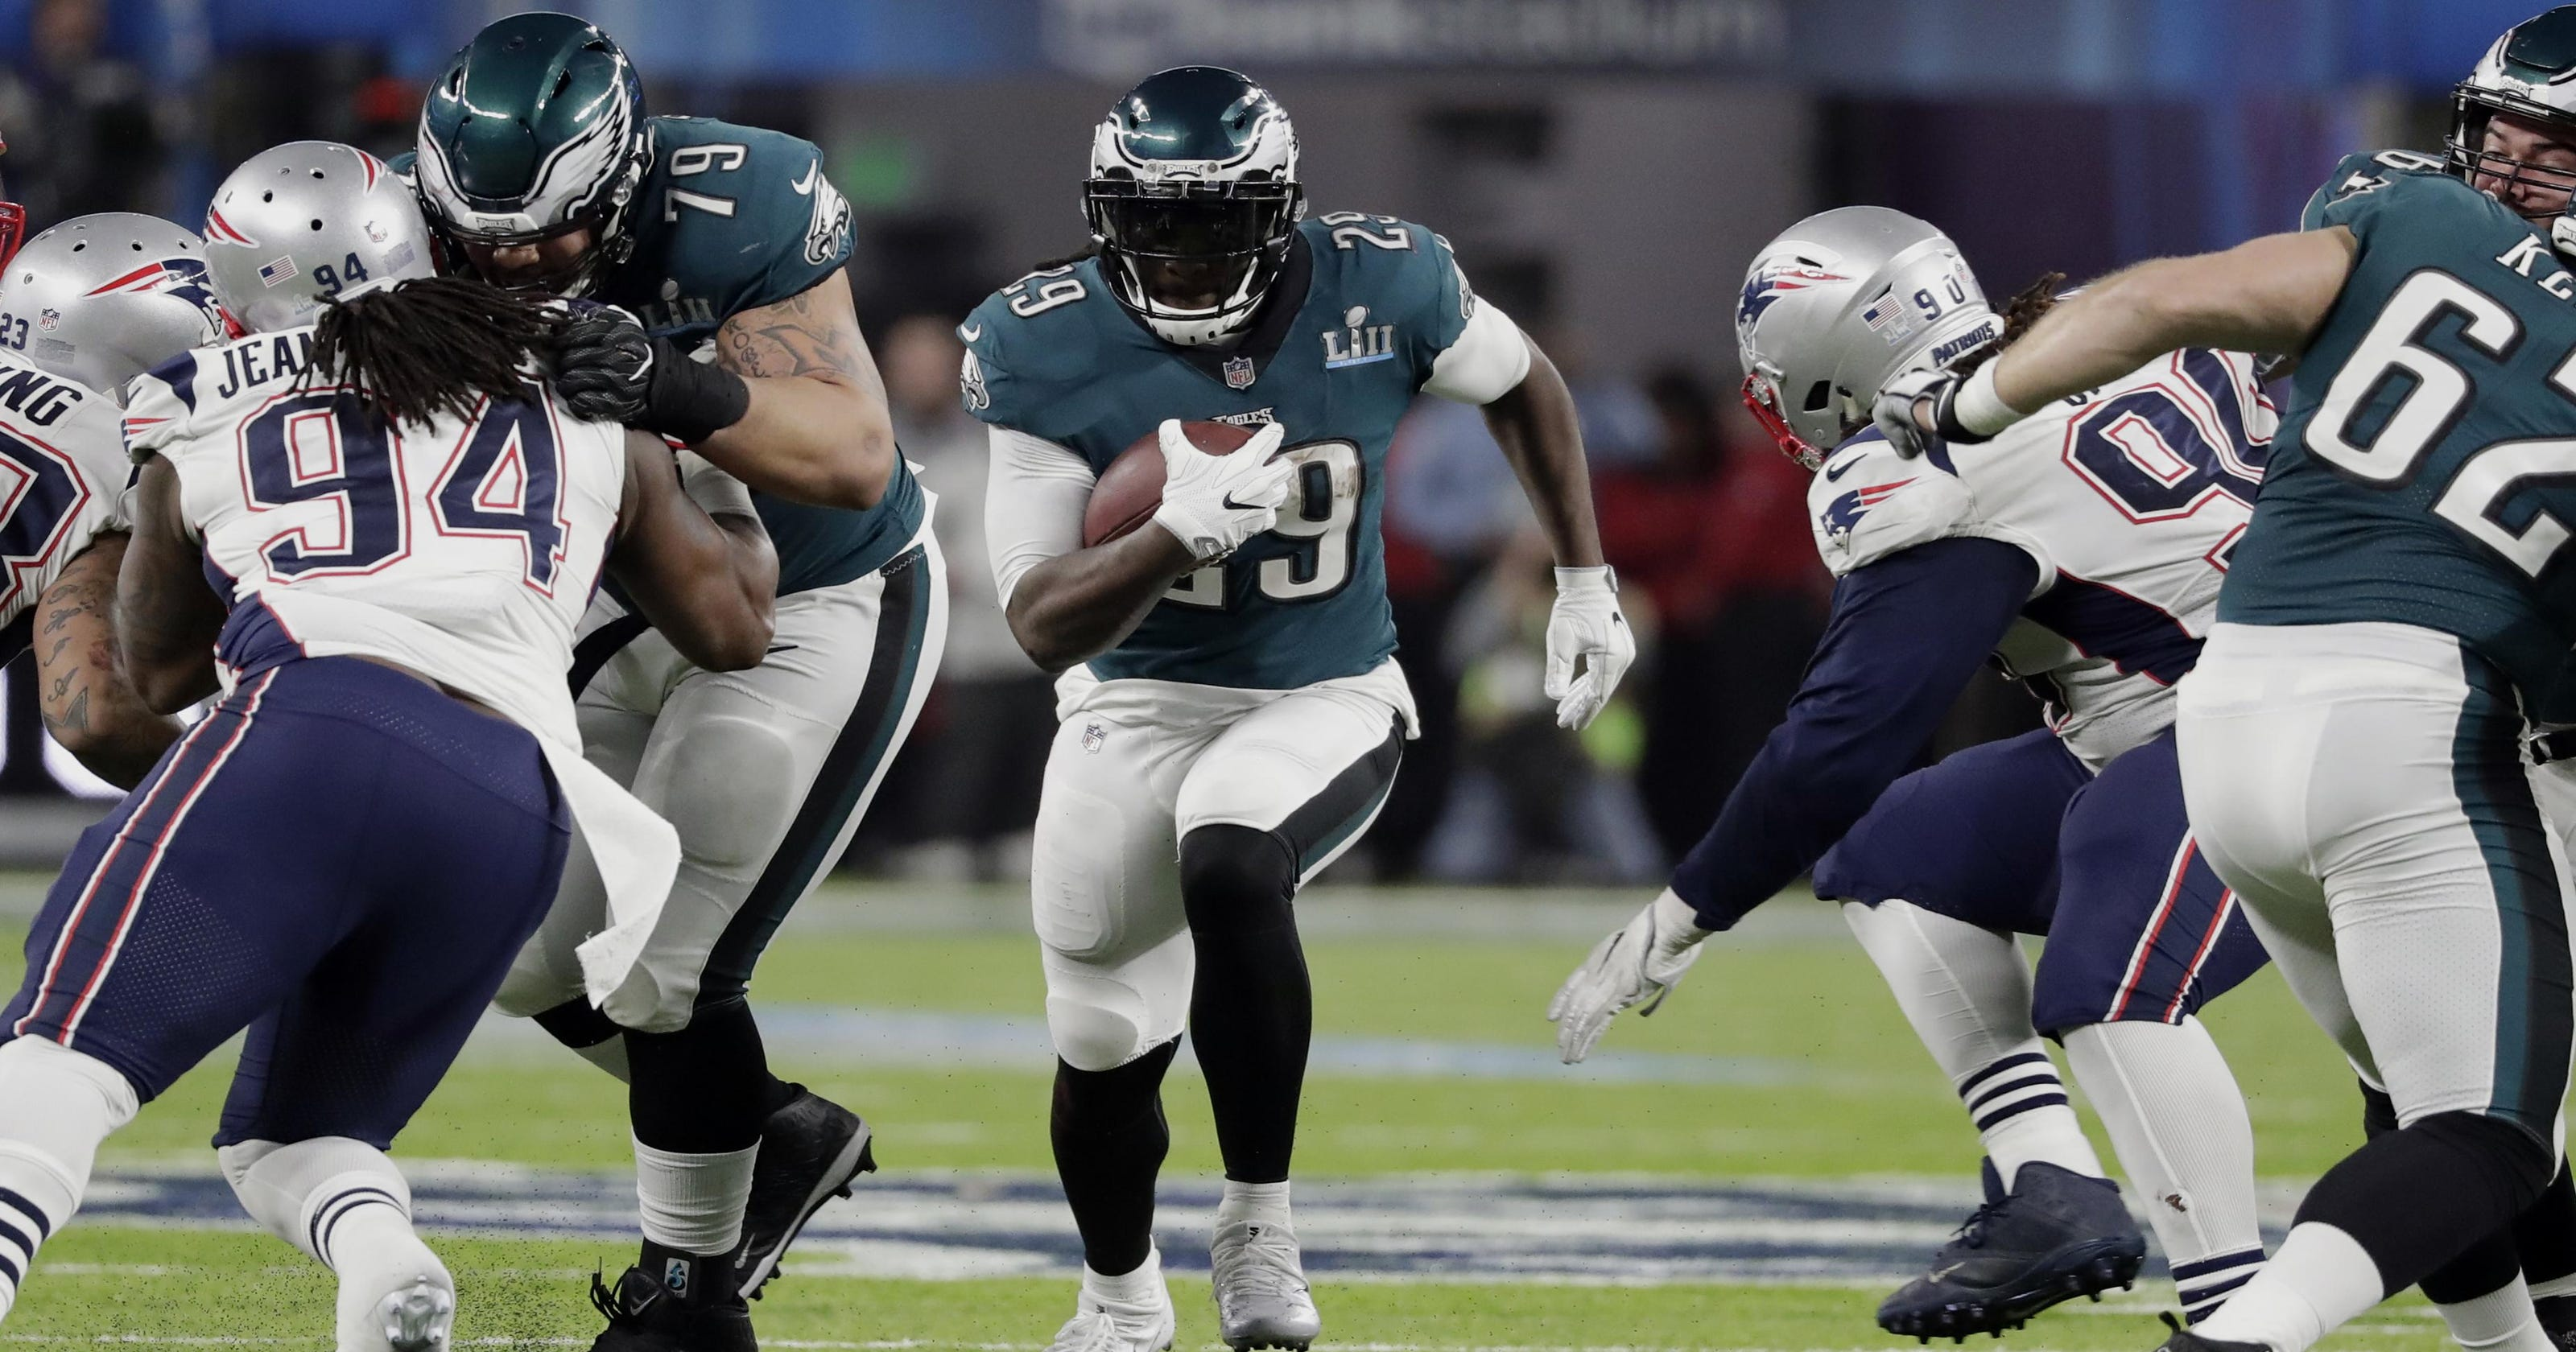 e427d85d39b Lions upgrade at running back by signing LeGarrette Blount